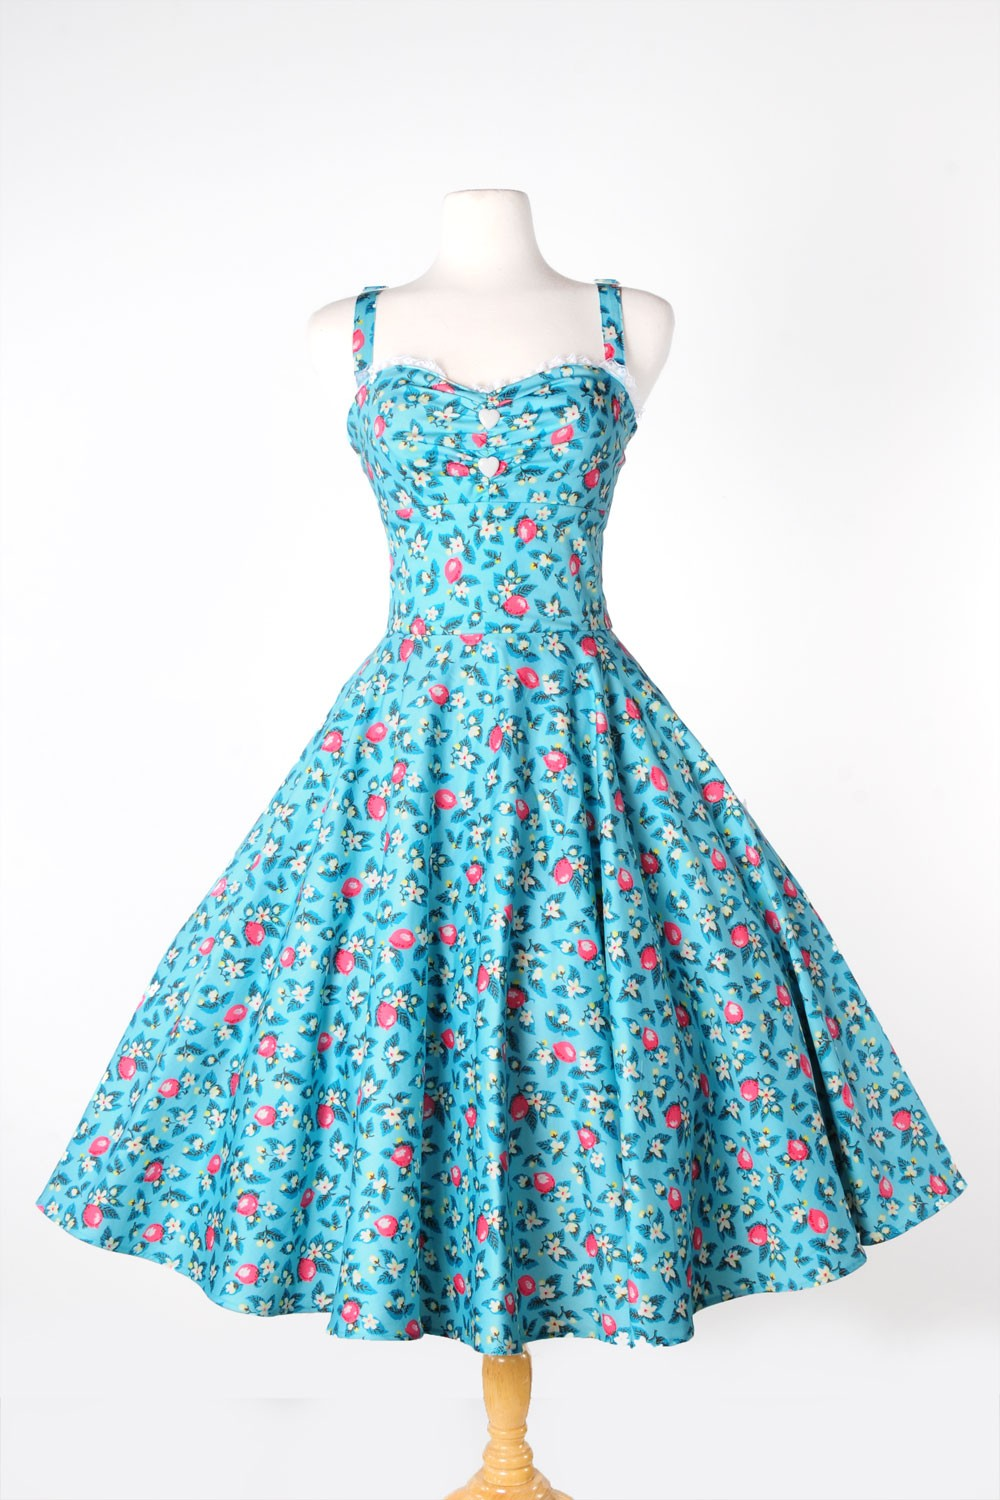 Plus-Size Betty Draper-like Dress from Pinup Girl Clothing